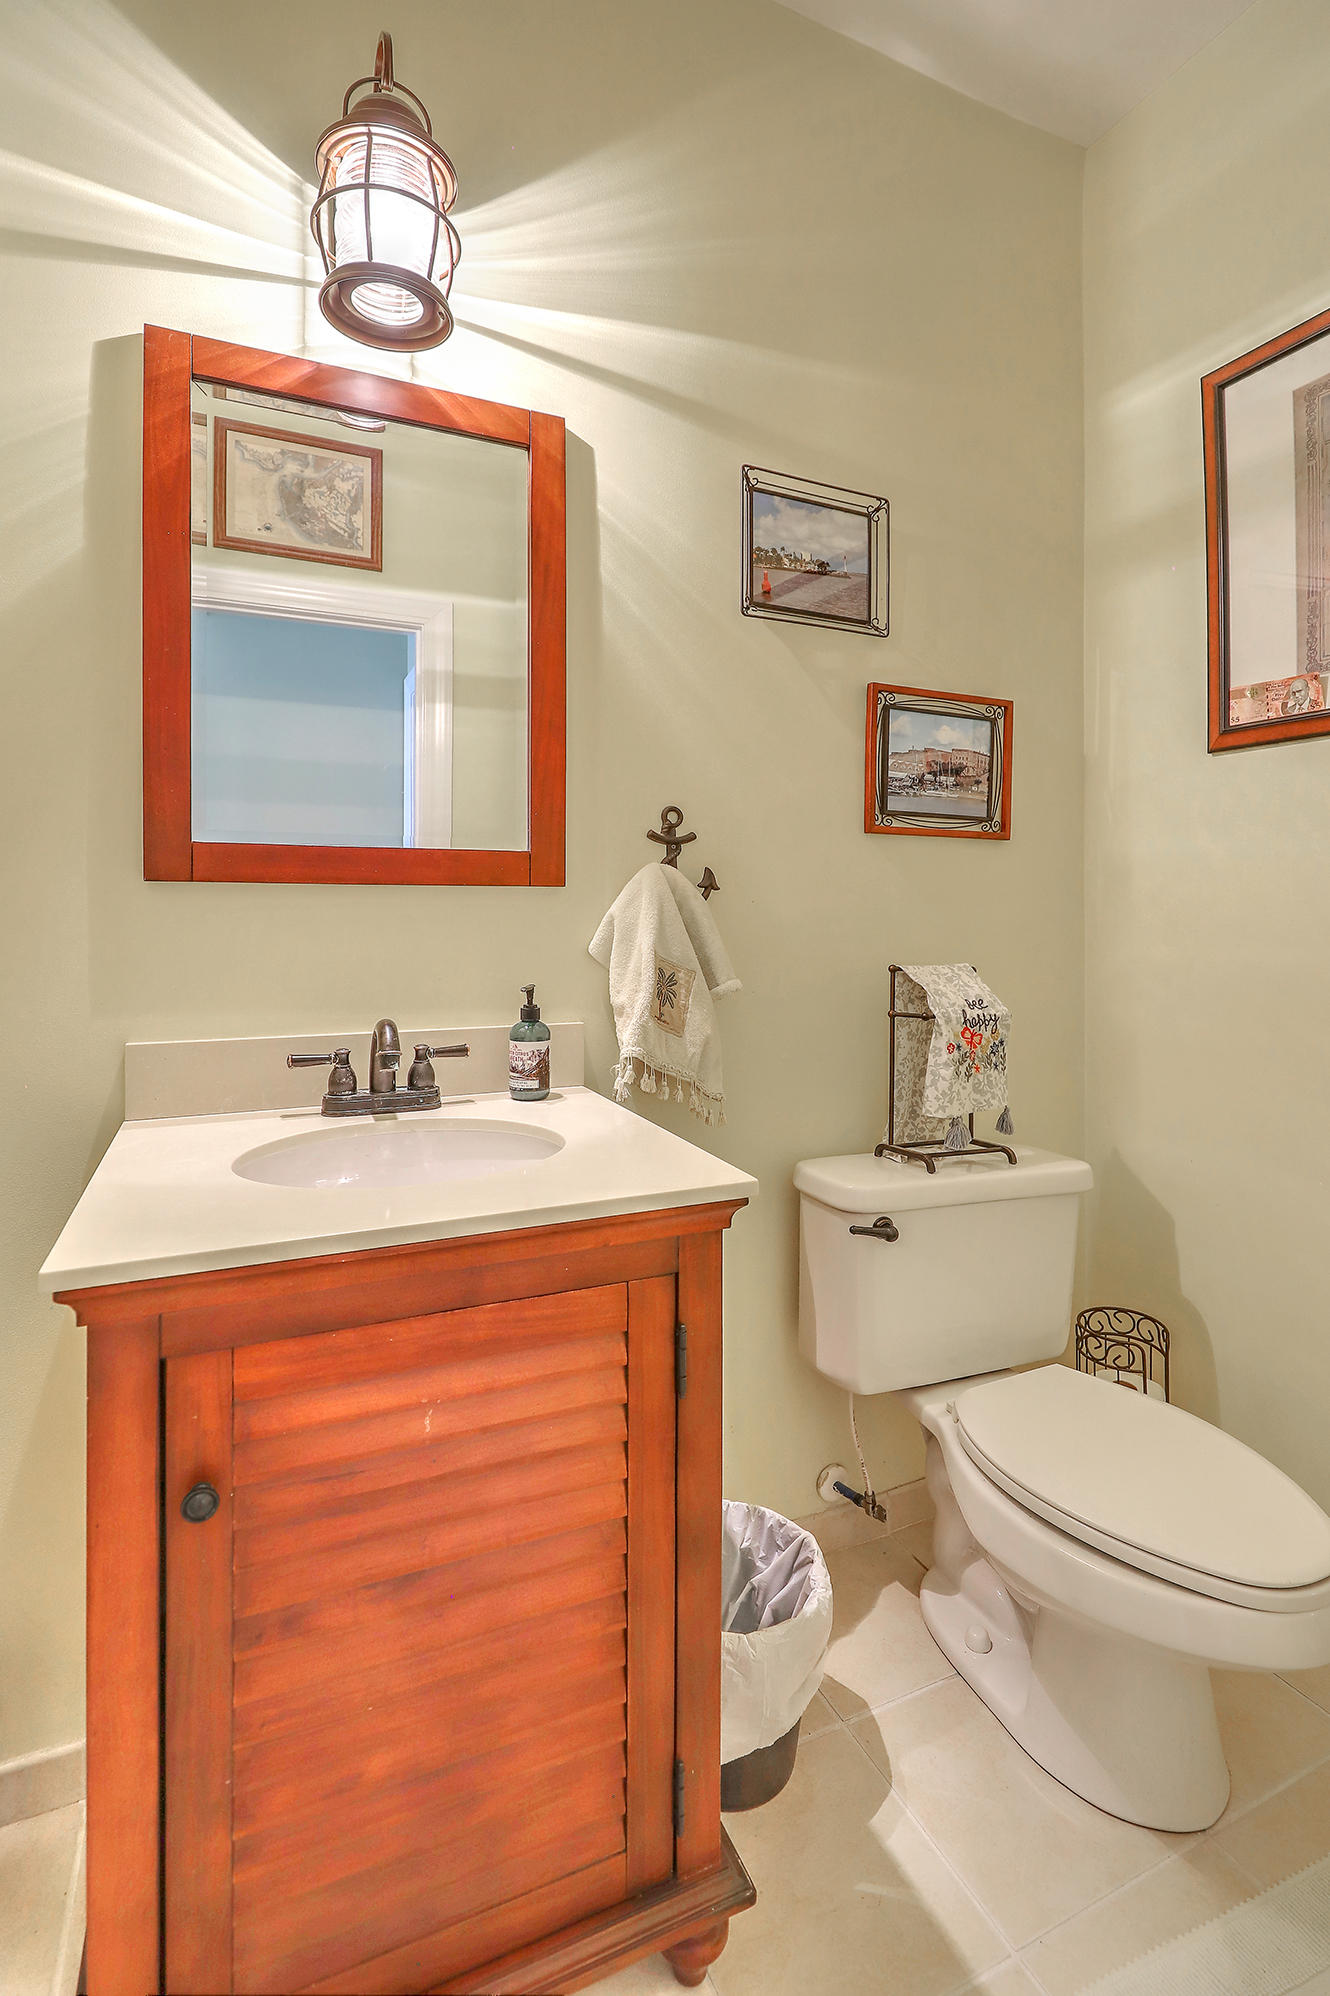 Rivertowne On The Wando Homes For Sale - 2182 Sandy Point Lane, Mount Pleasant, SC - 8